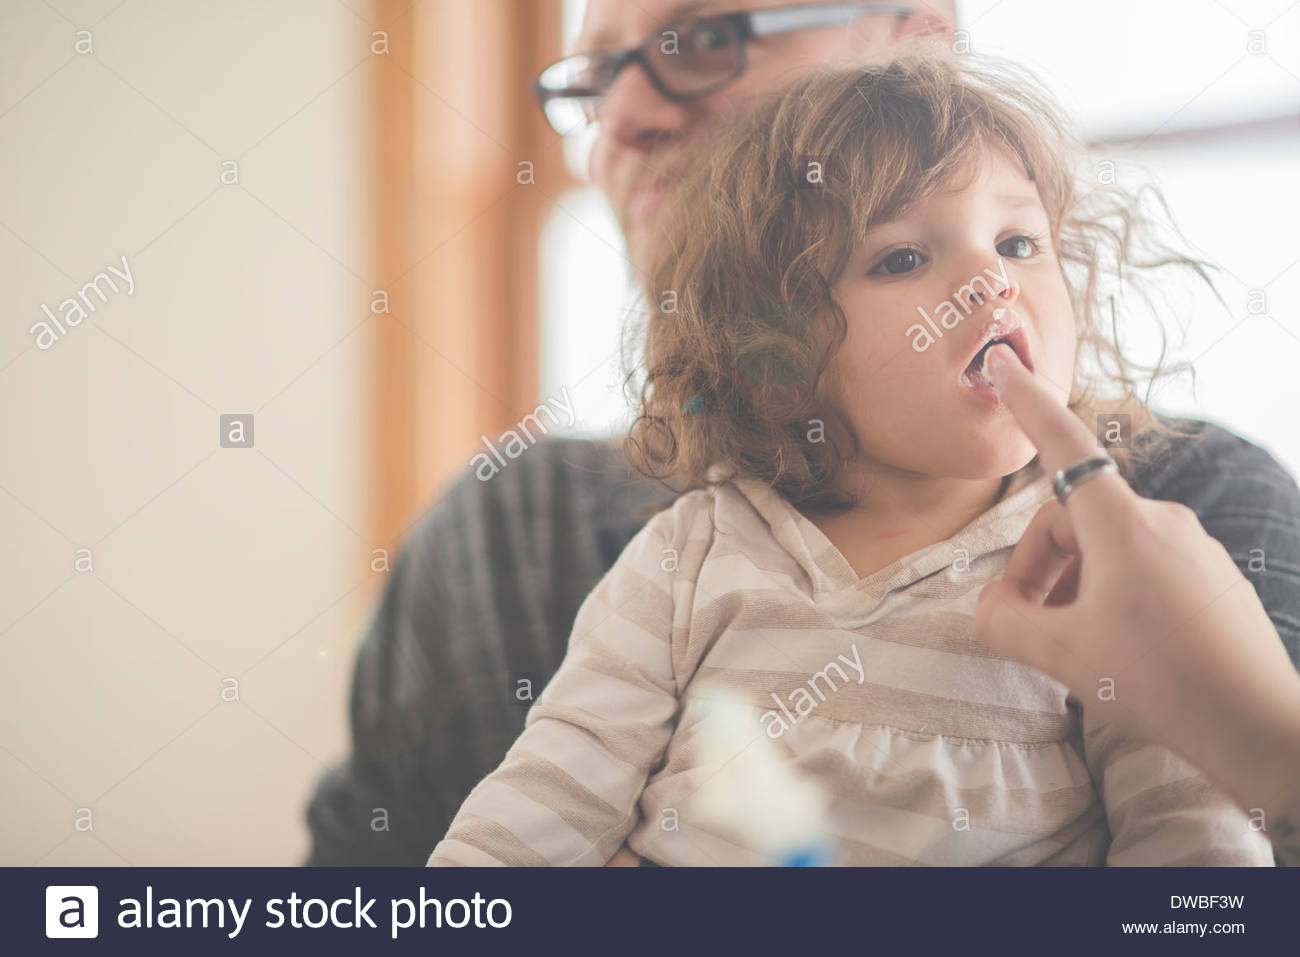 Female toddler licking grandmothers finger - Stock Image